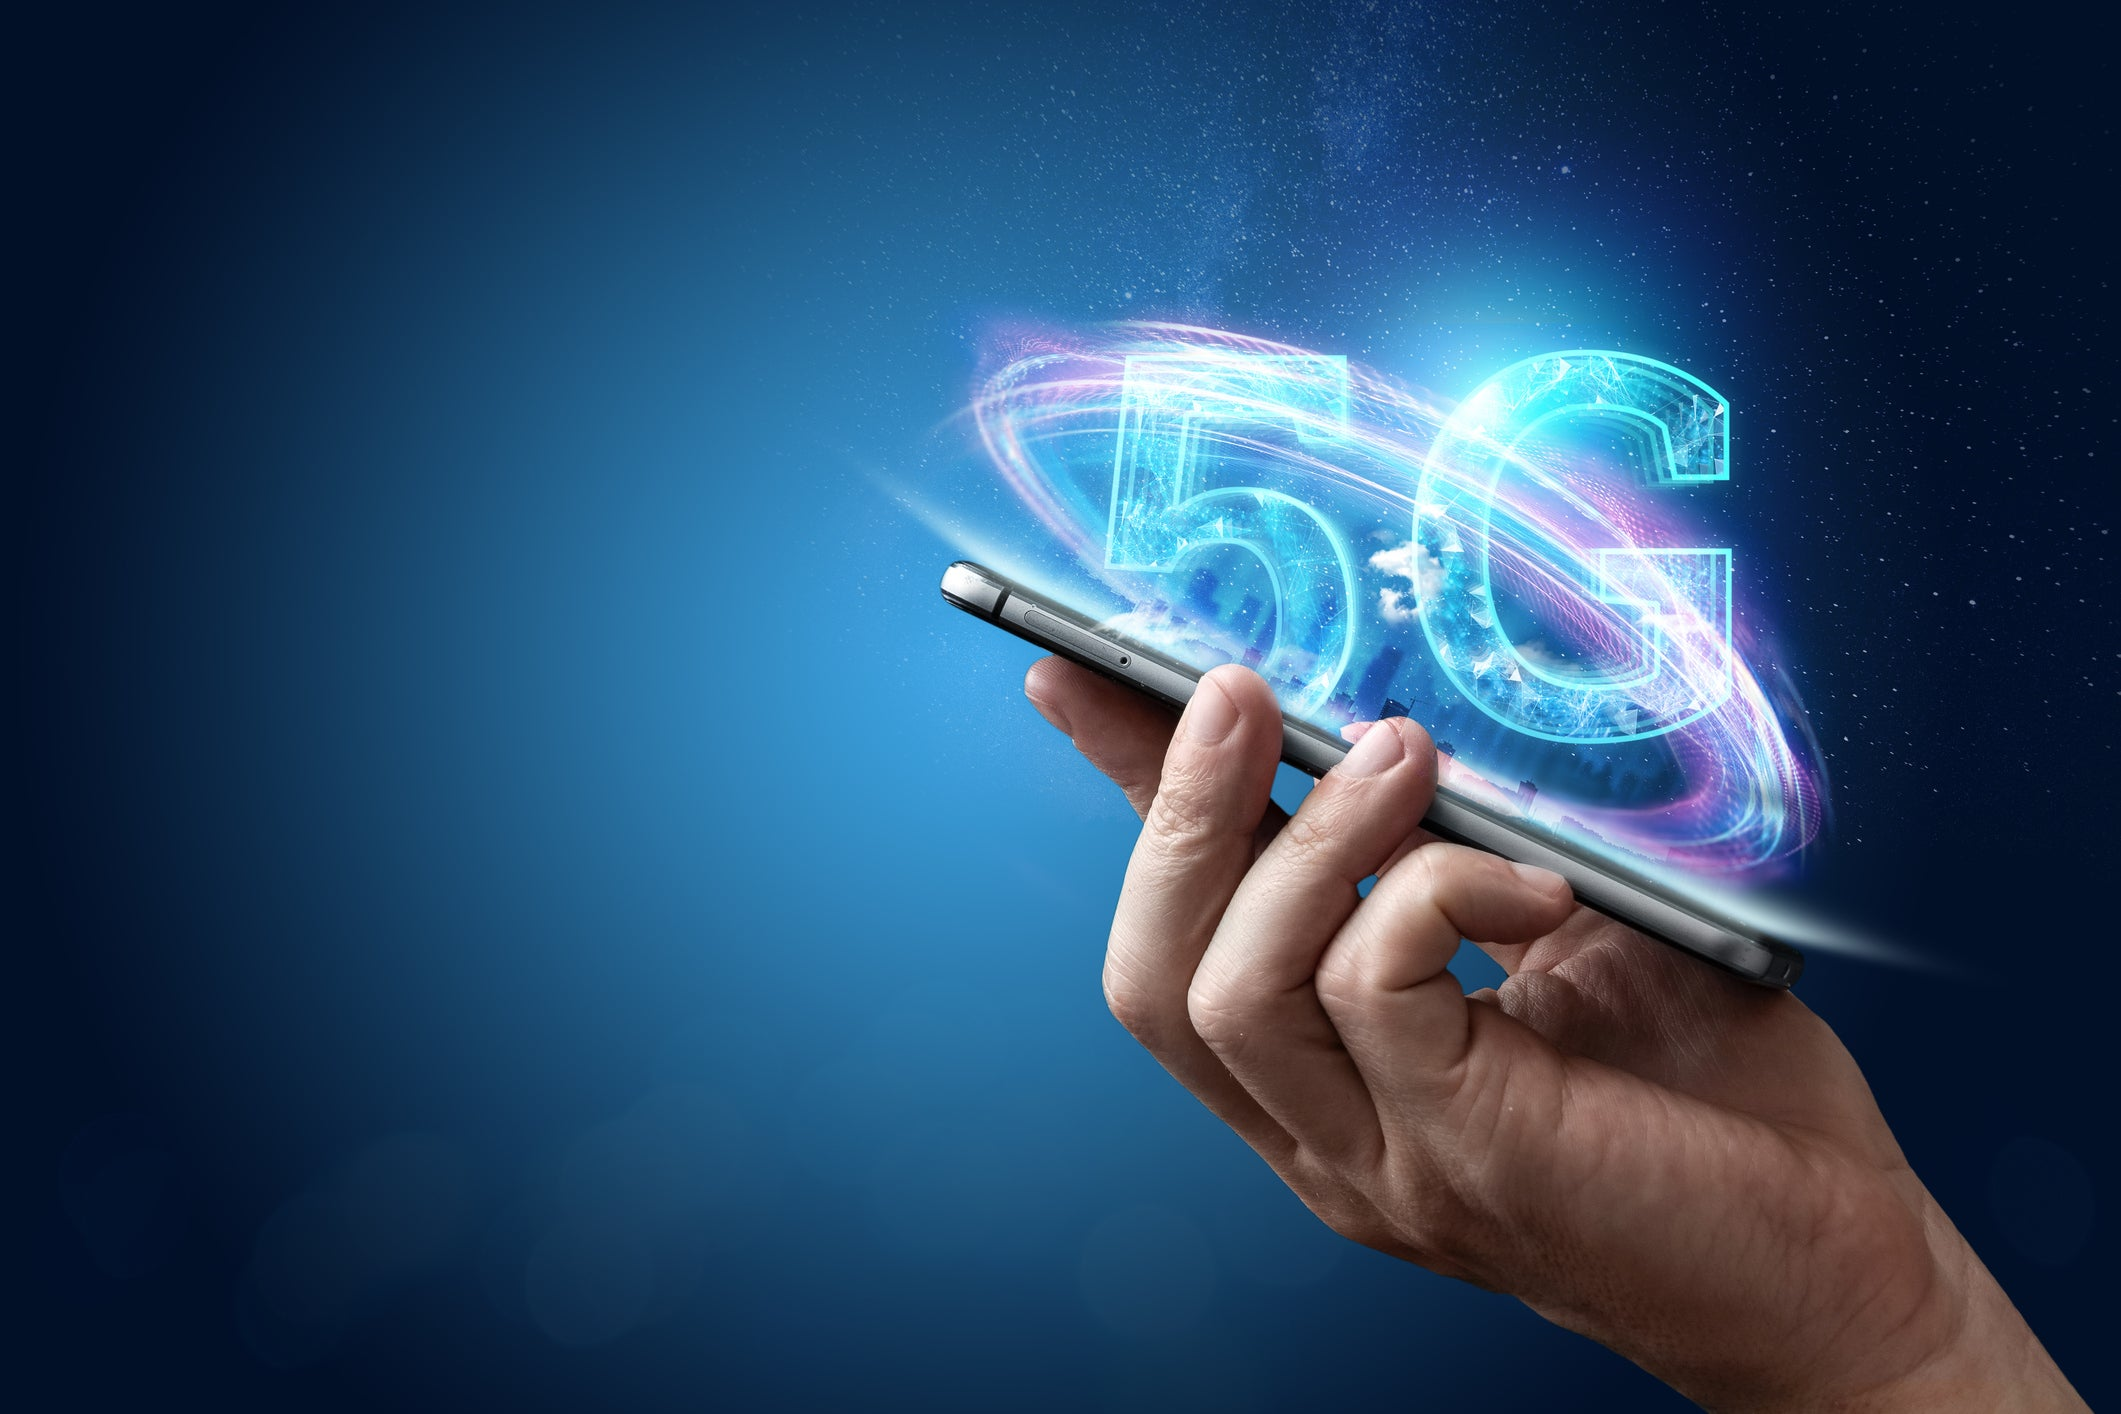 Is This 5G Stock About to Crush the Market Once Again? Harsh Chauhan | Sep 19, 2020